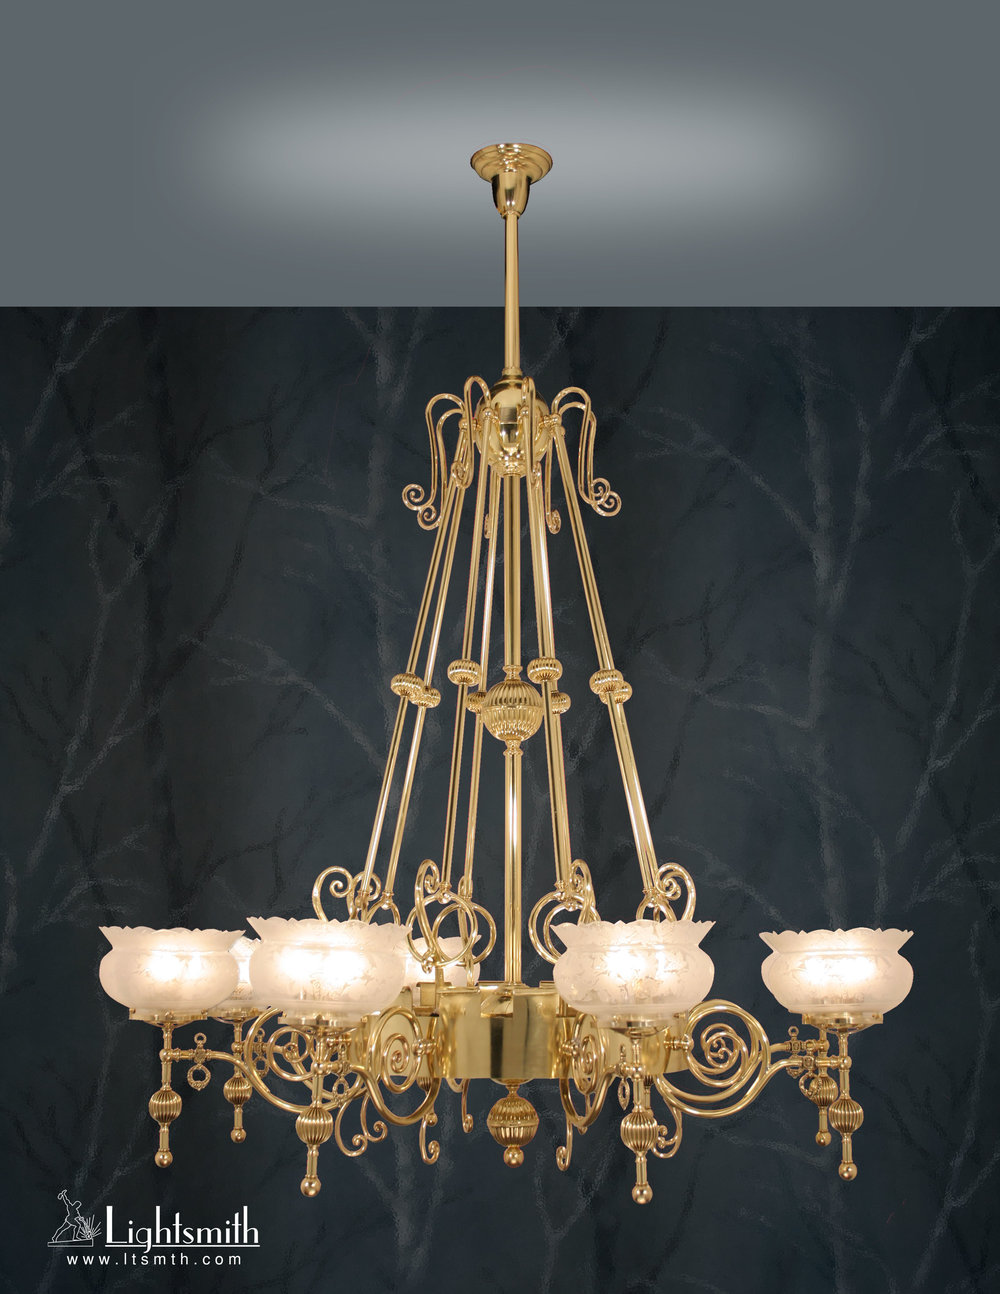 CH-4000 - Polished Brass - Glass Crown Shade